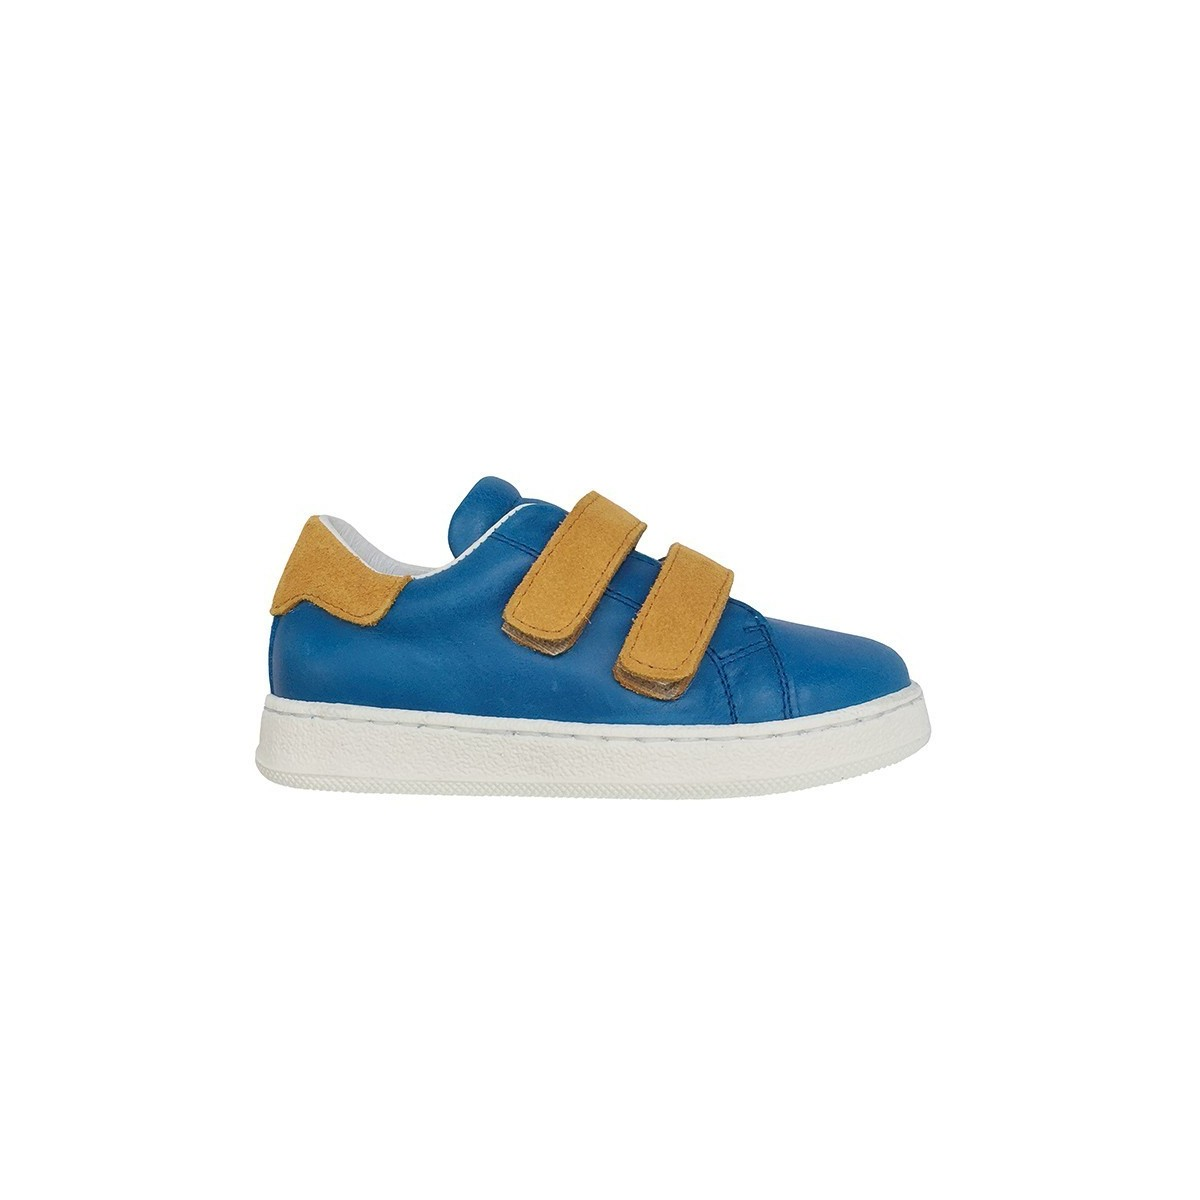 Baskets MoonWalk Blue/nubuck moutarde